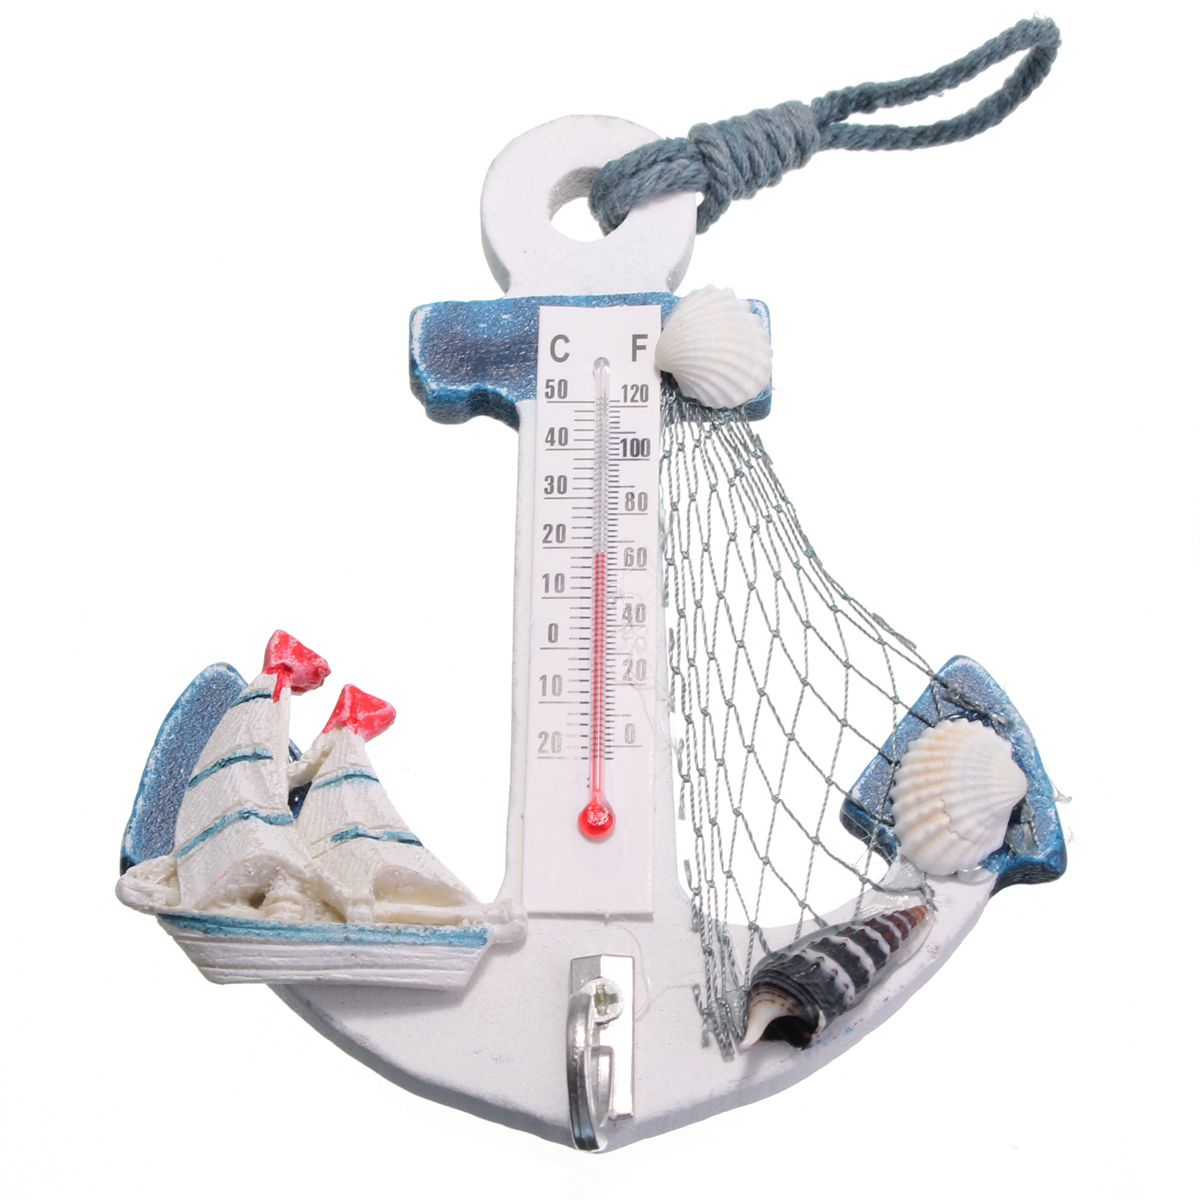 wholesale price free shipping anchor thermometer seashell wholesale price free shipping anchor thermometer seashell starfish net indoor wall art mediterranean style home